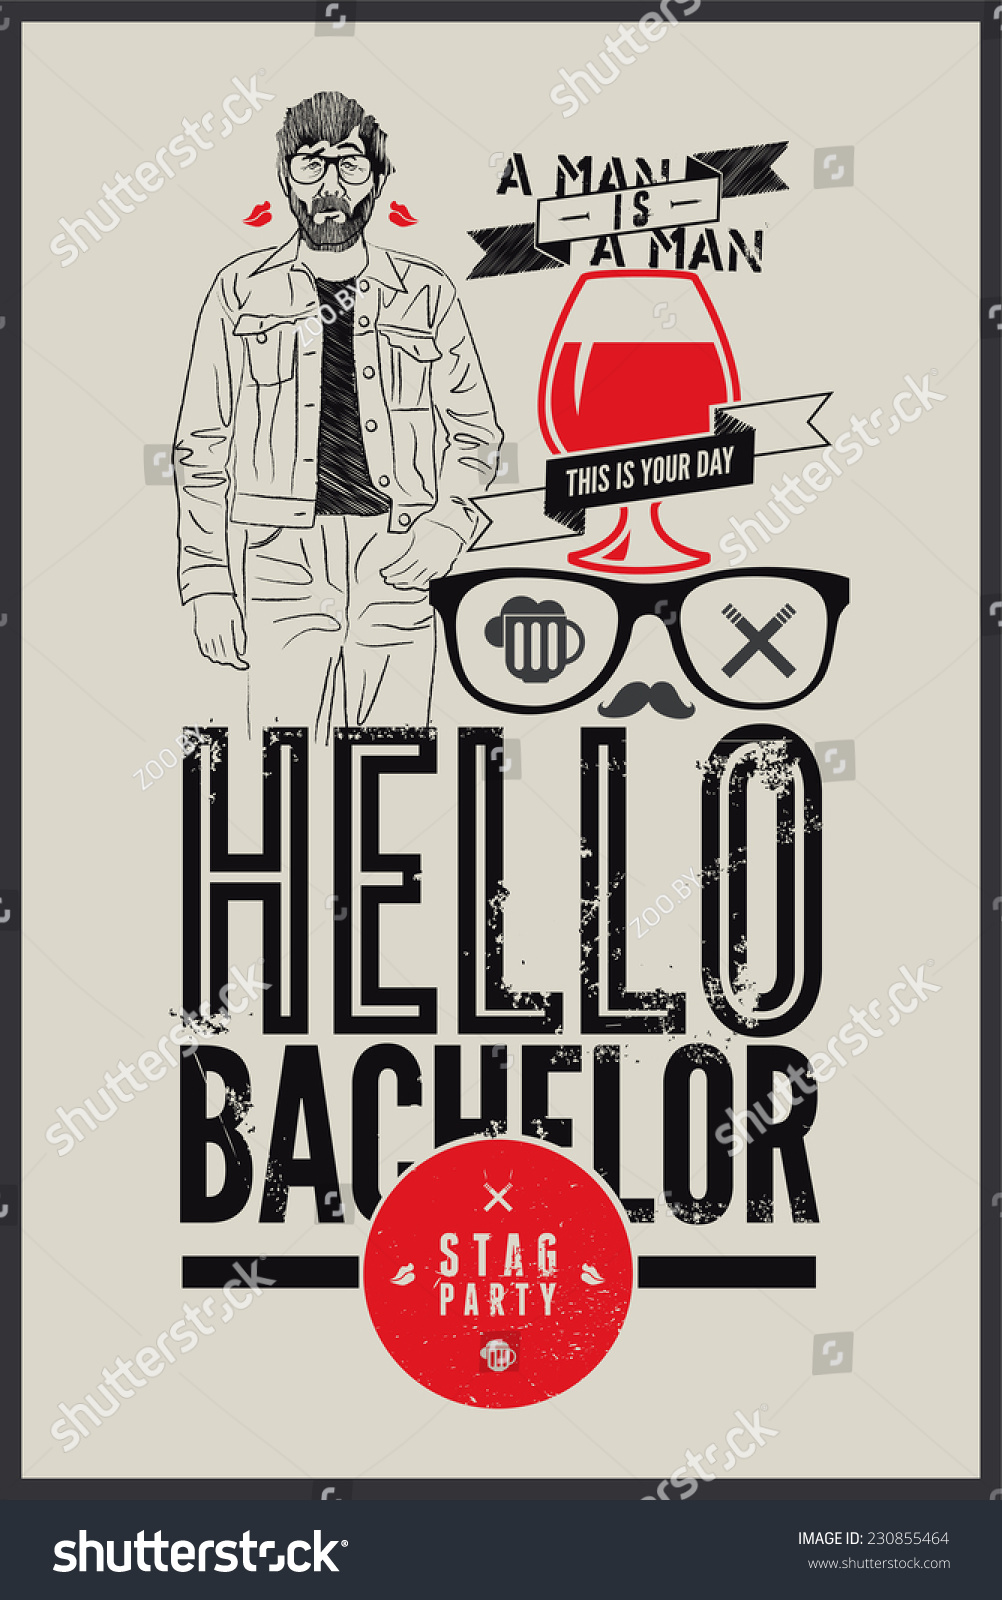 Poster stag party hello bachelor stock vector 230855464 shutterstock poster for stag party hello bachelor monicamarmolfo Choice Image